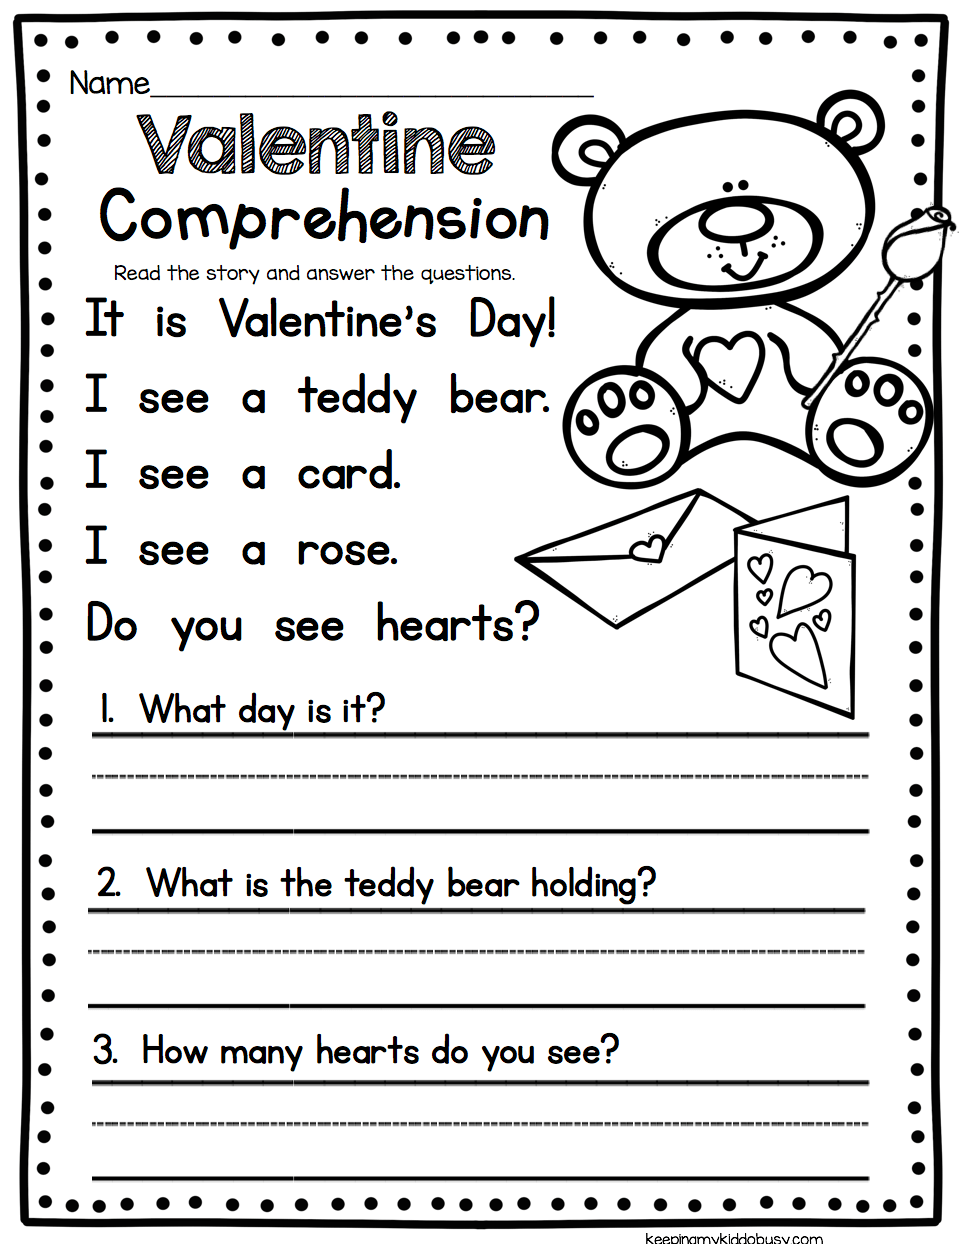 worksheet Kindergarten Listening Comprehension Worksheets february math ela pack freebies comprehension worksheets valentines day worksheet